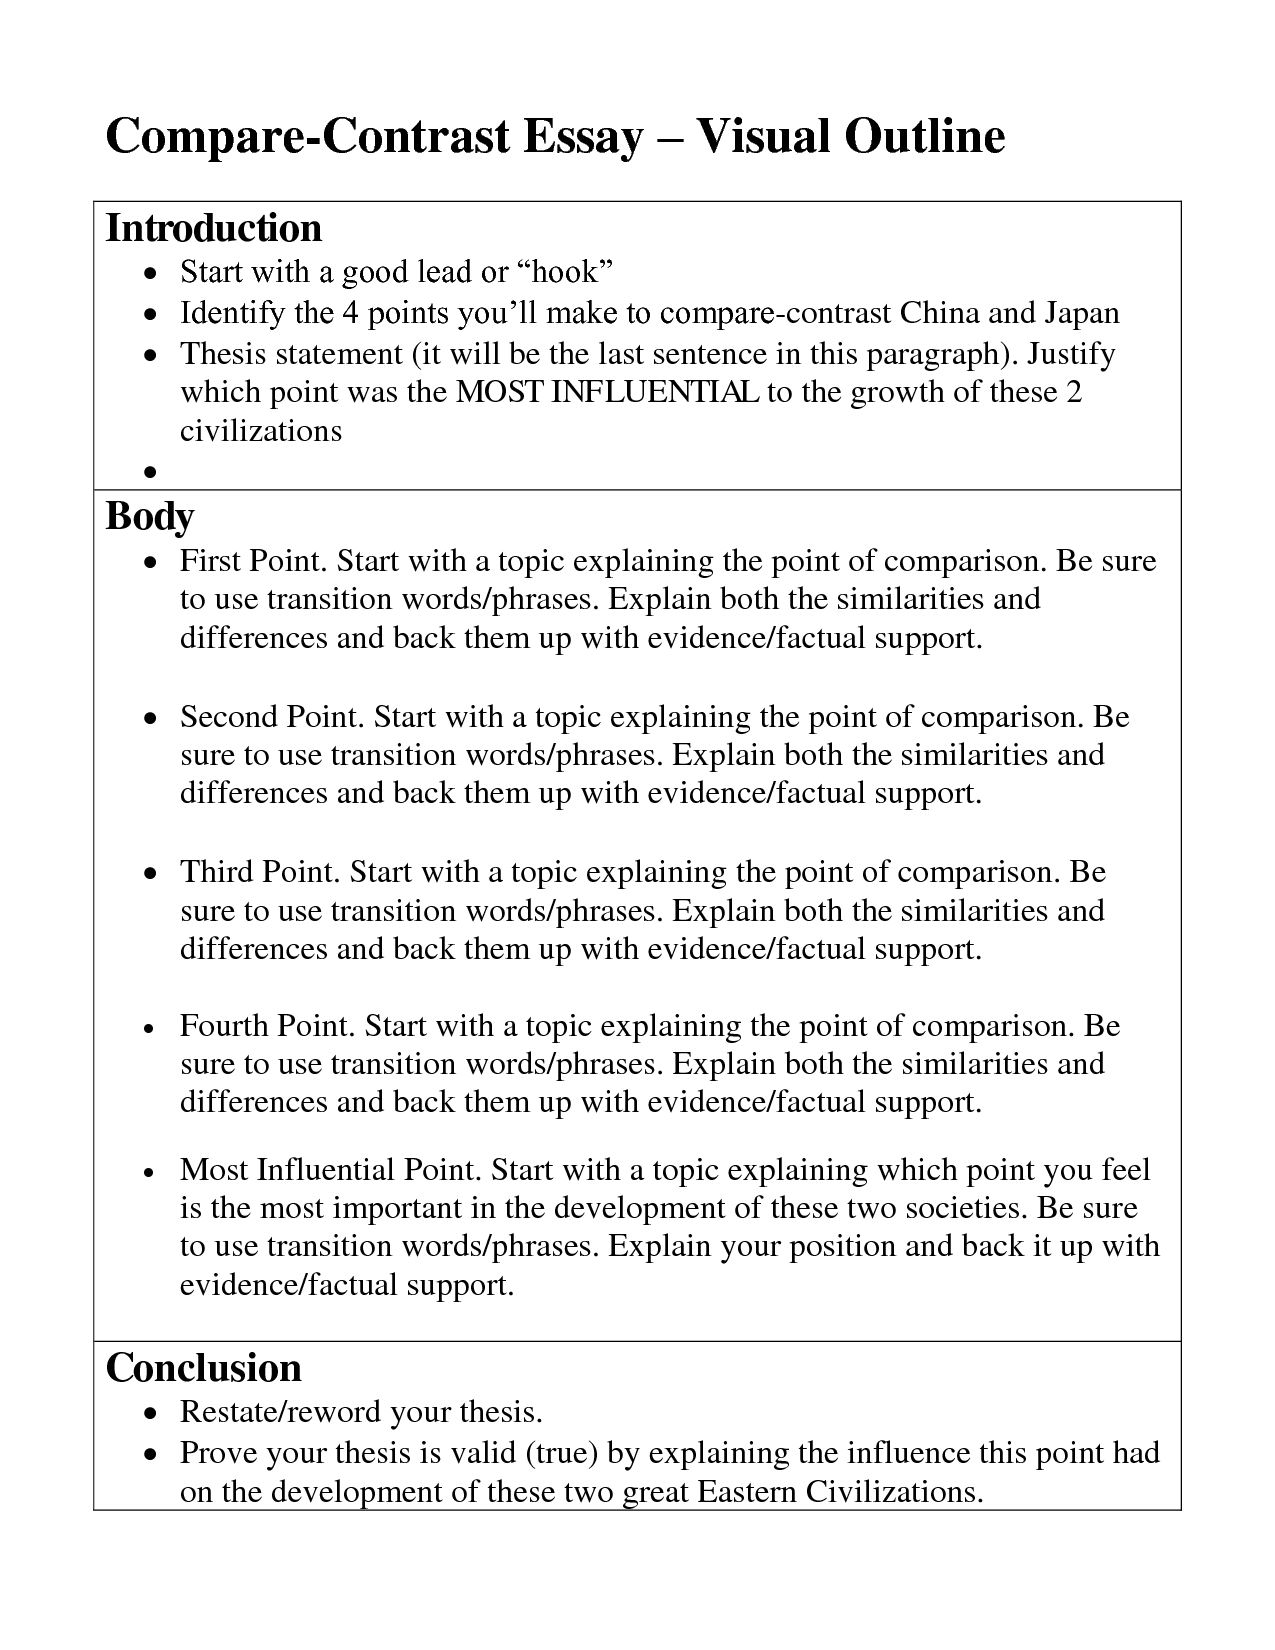 012 Ideas Collection How To Write Essay Outline Template Reserch Papers I Search Fancy Science Topics For High Schoolh Of Good Marvelous Research Paper Sample In Education About Business Full